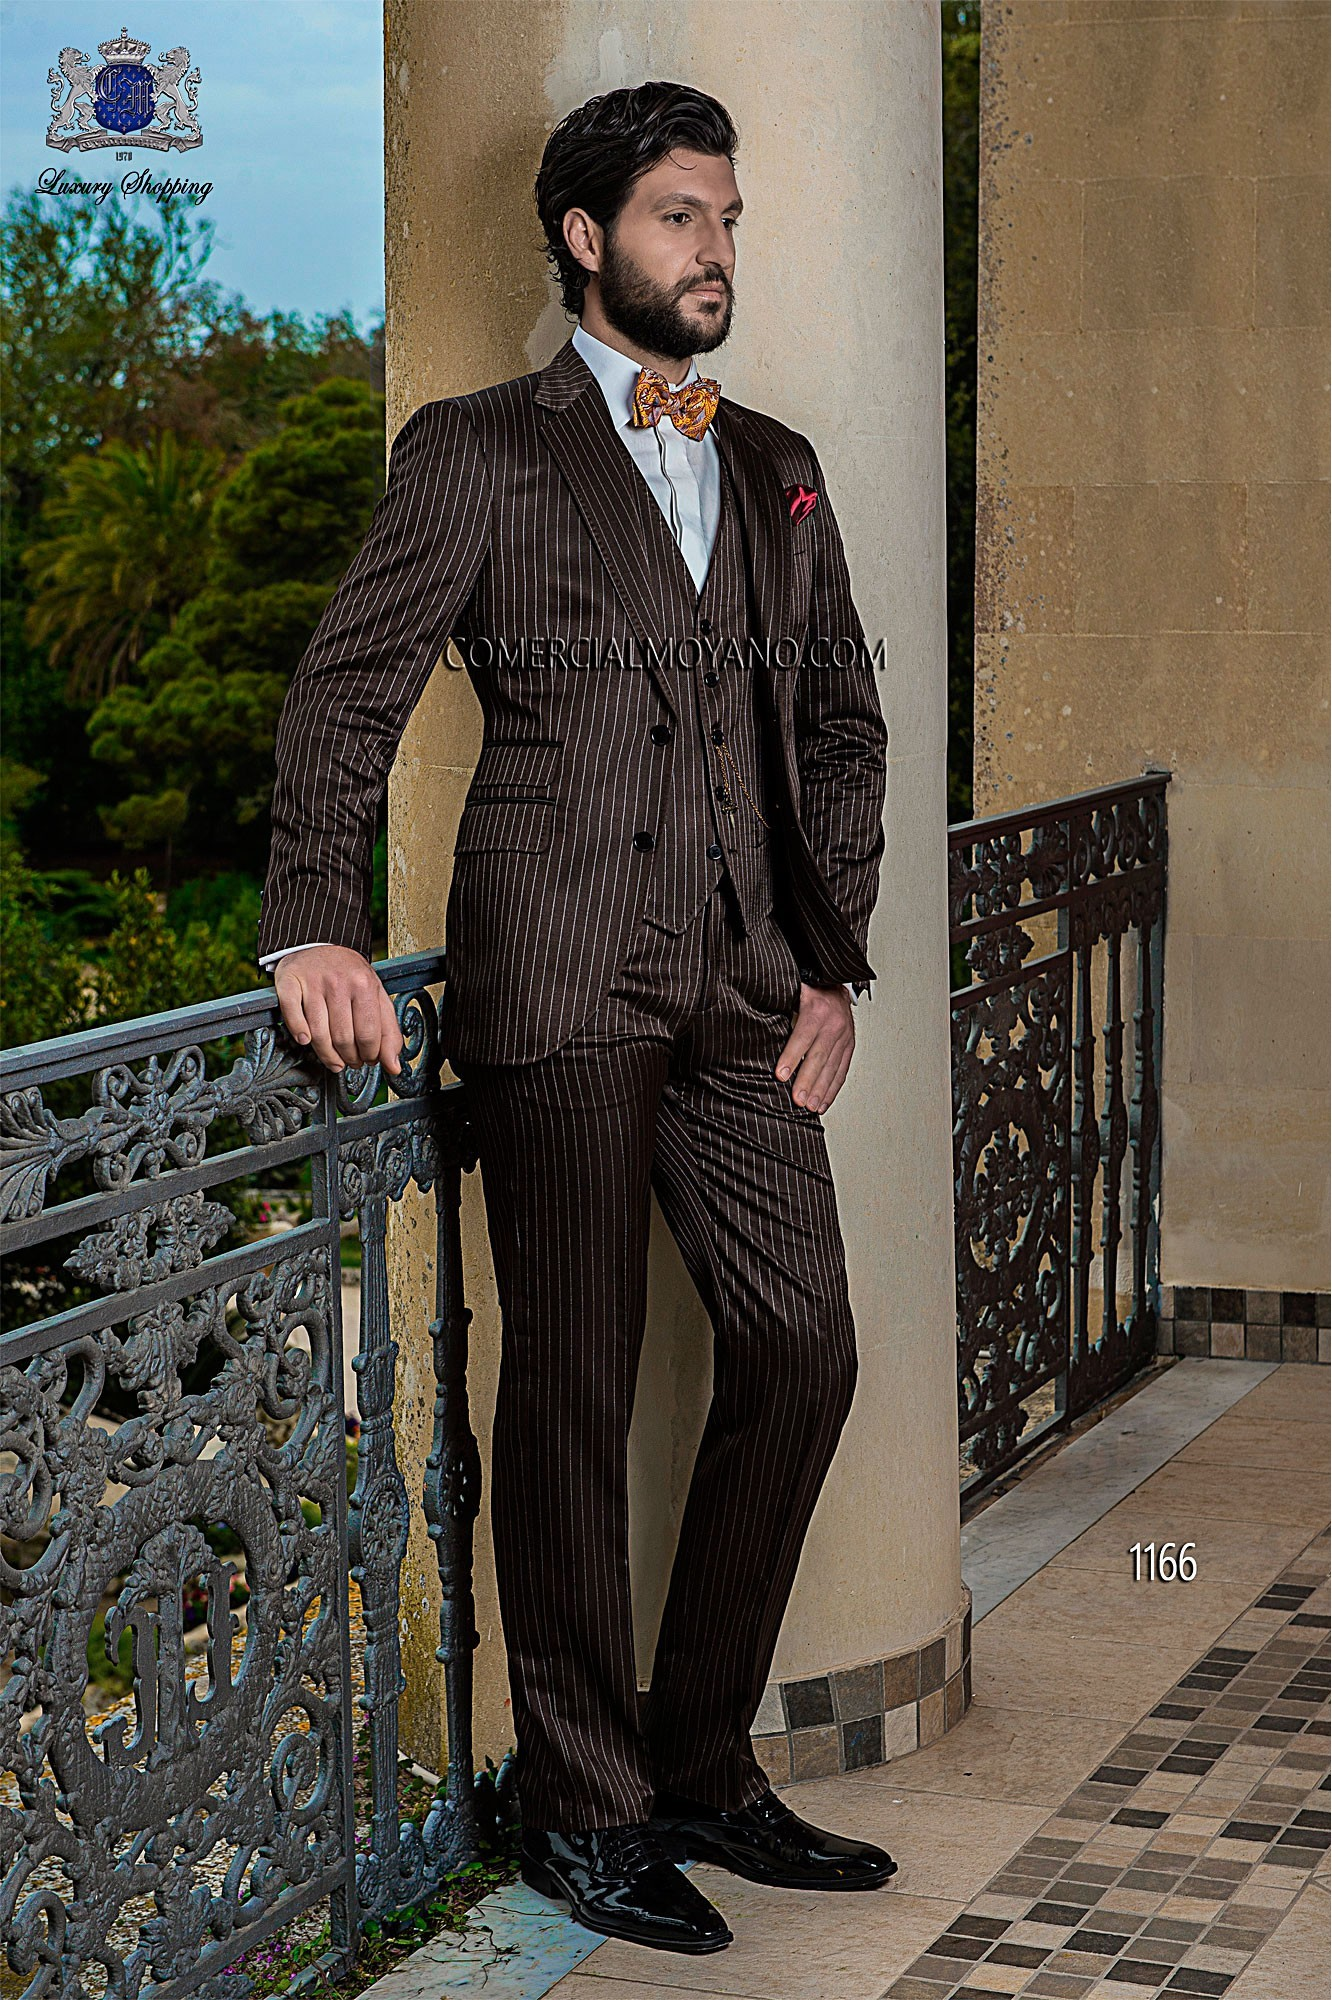 Italian bespoke single breasted suit, 2 buttons, in new performance fabric, brown pistripe; with matching waistcoat, style 1166 Ottavio Nuccio Gala, 2015 Gentleman collection.